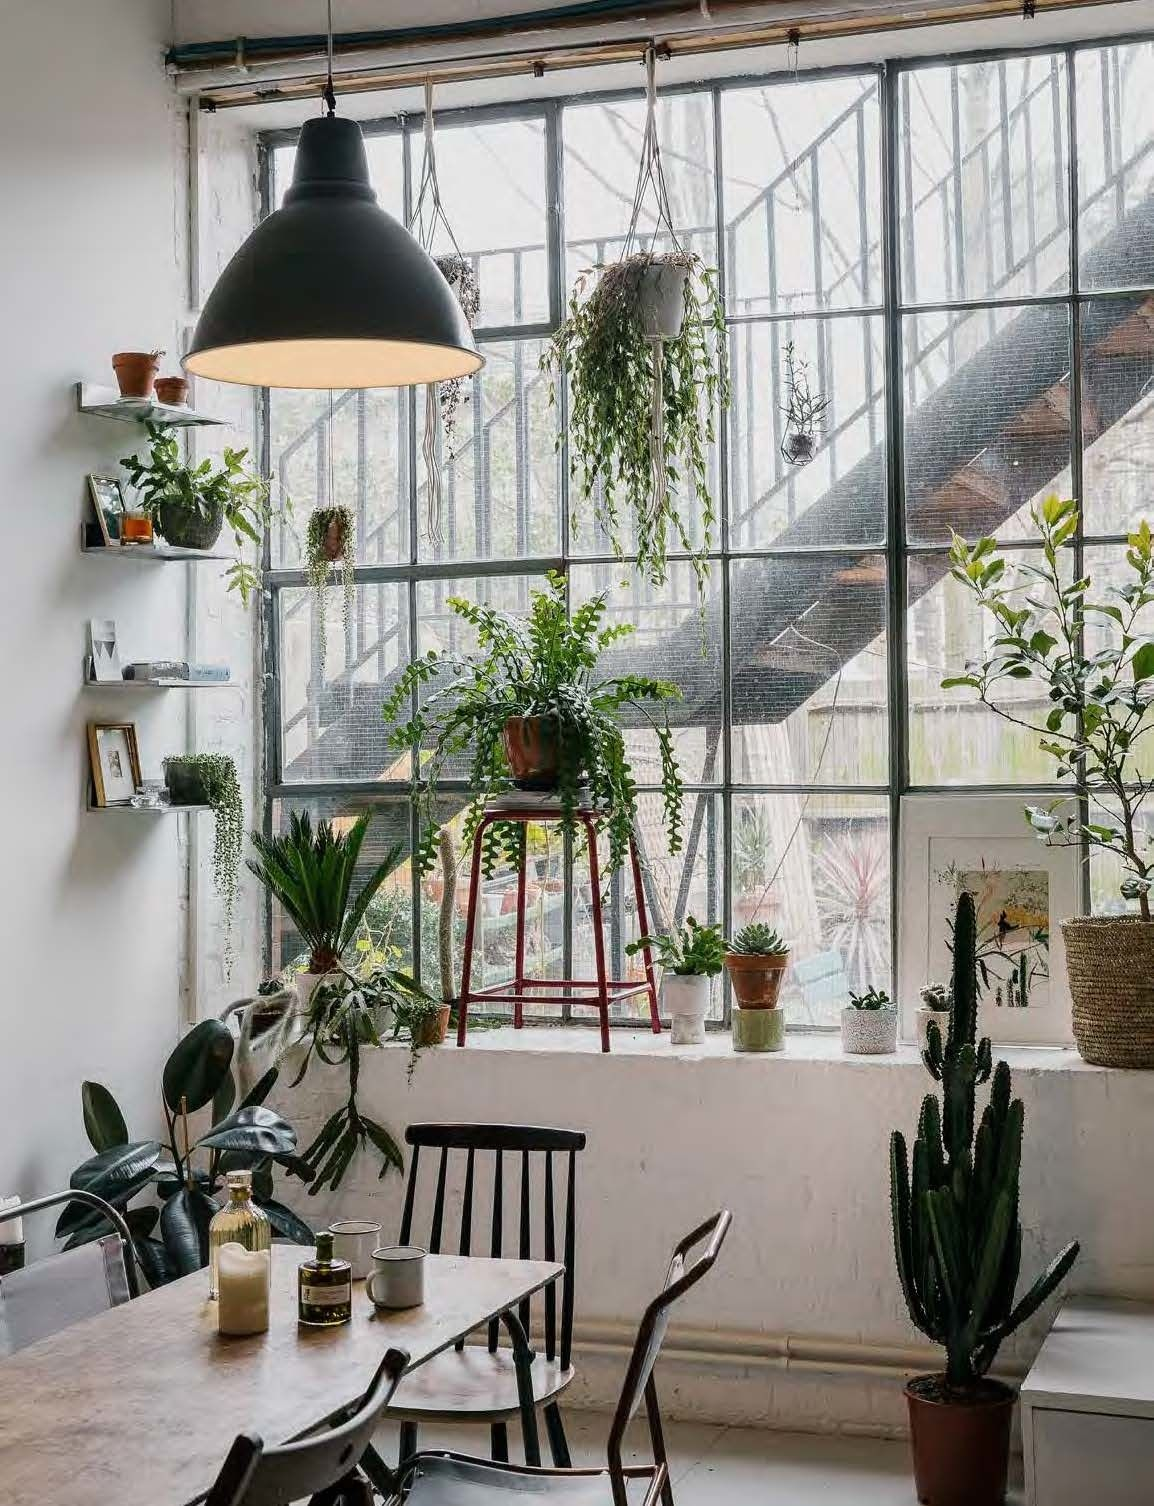 3 Things You Didnu0027t Know About Caring For Succulents | Architectural Digest